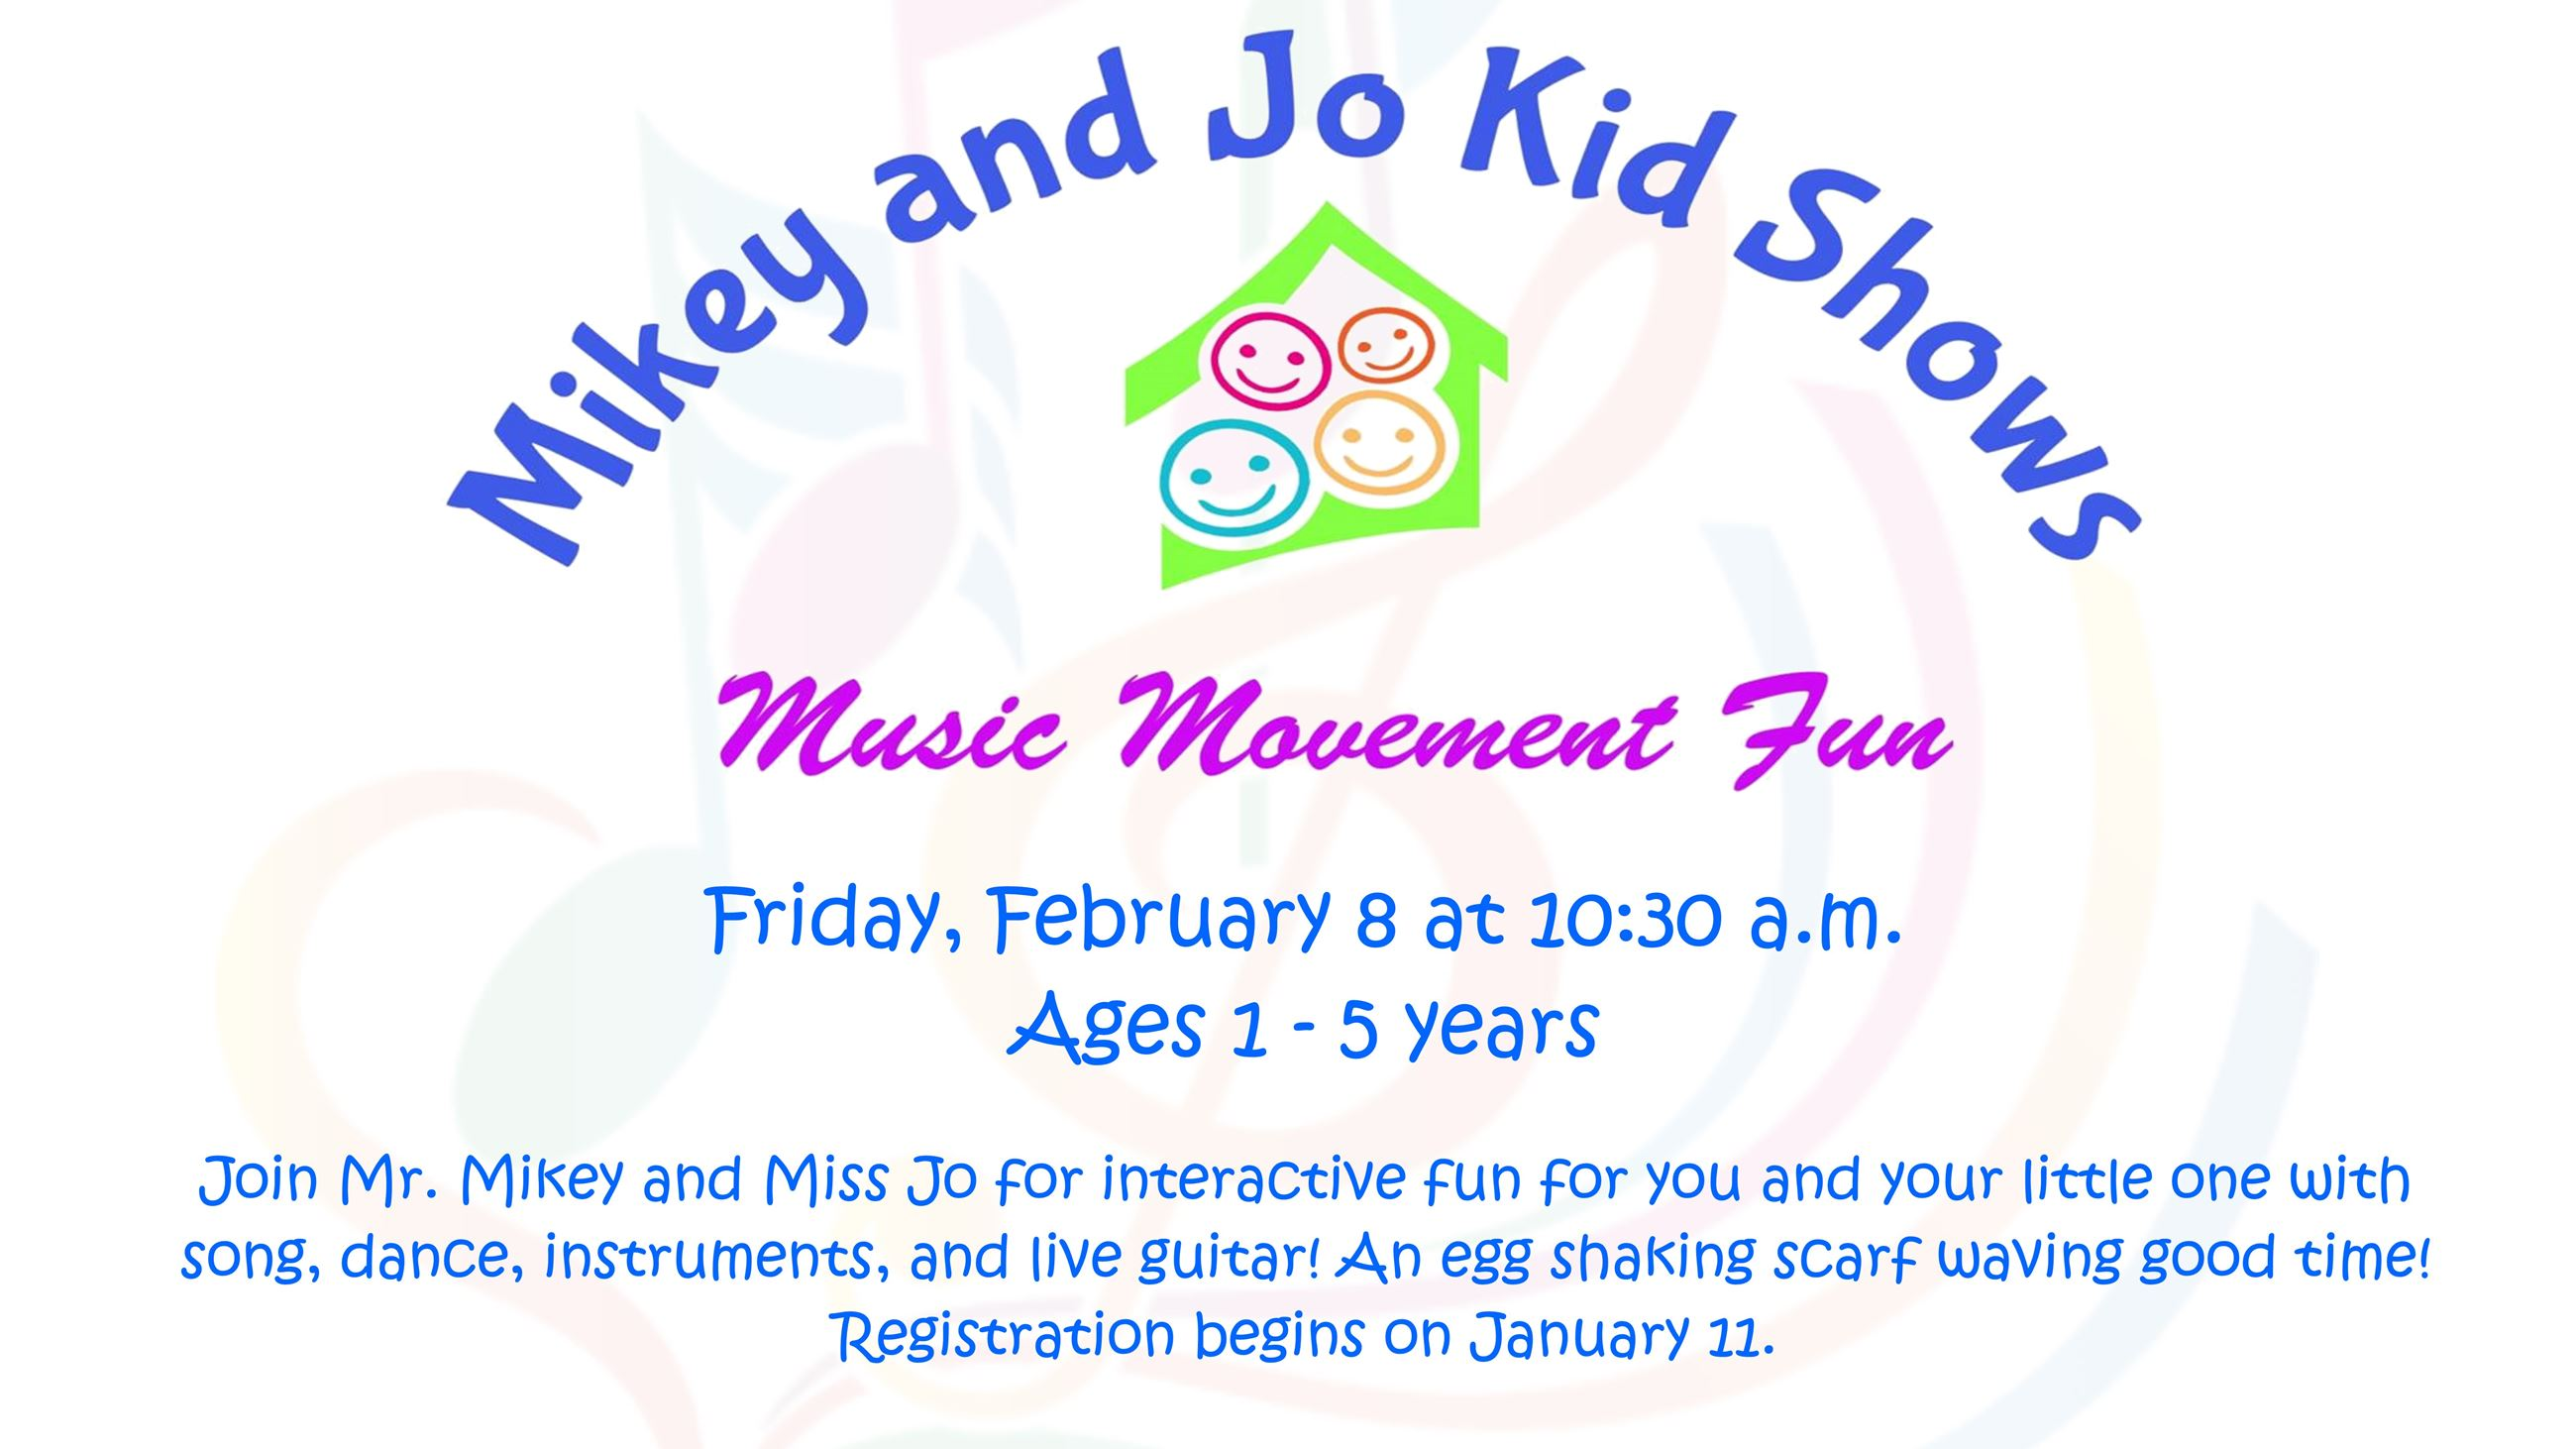 Mikey and Jo Kid Shows. February 8 @ 10:30 a.m. Ages 1 thru 5. Registration begins on January 11.